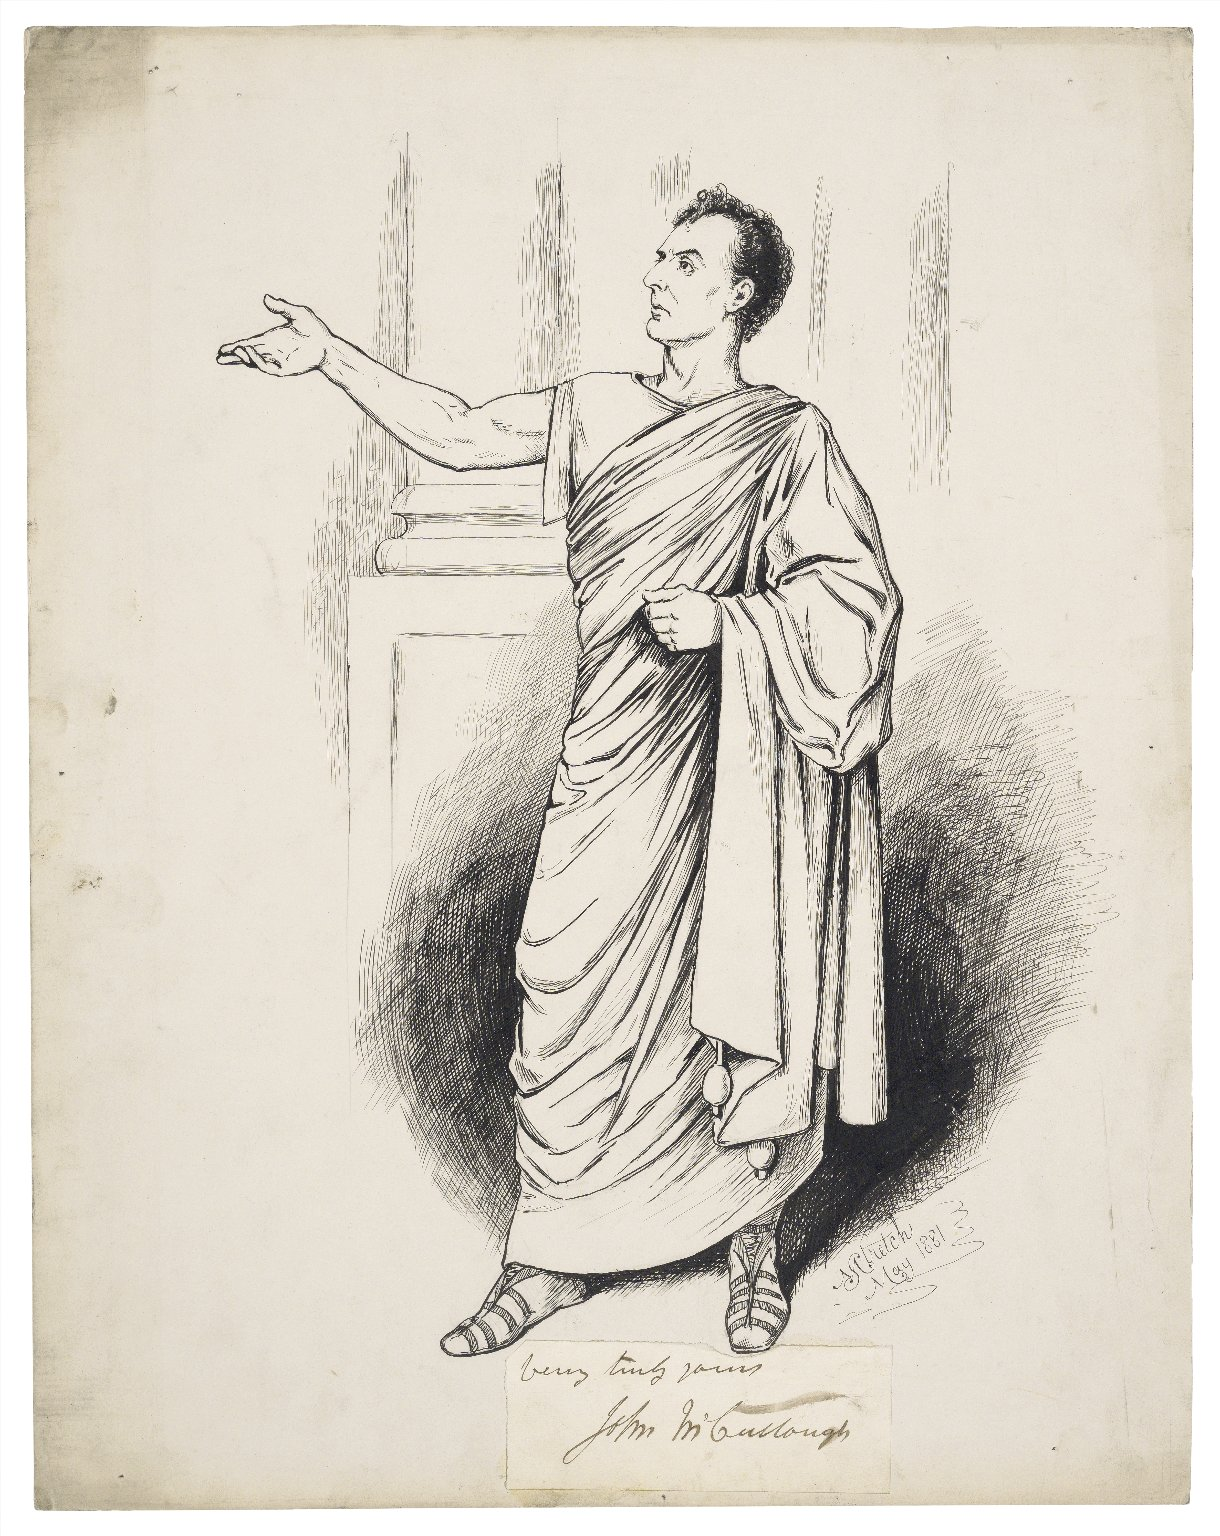 [John McCullough as Virginius in Knowle's tragedy of that name] [graphic] / M. Stretch, May 1881.